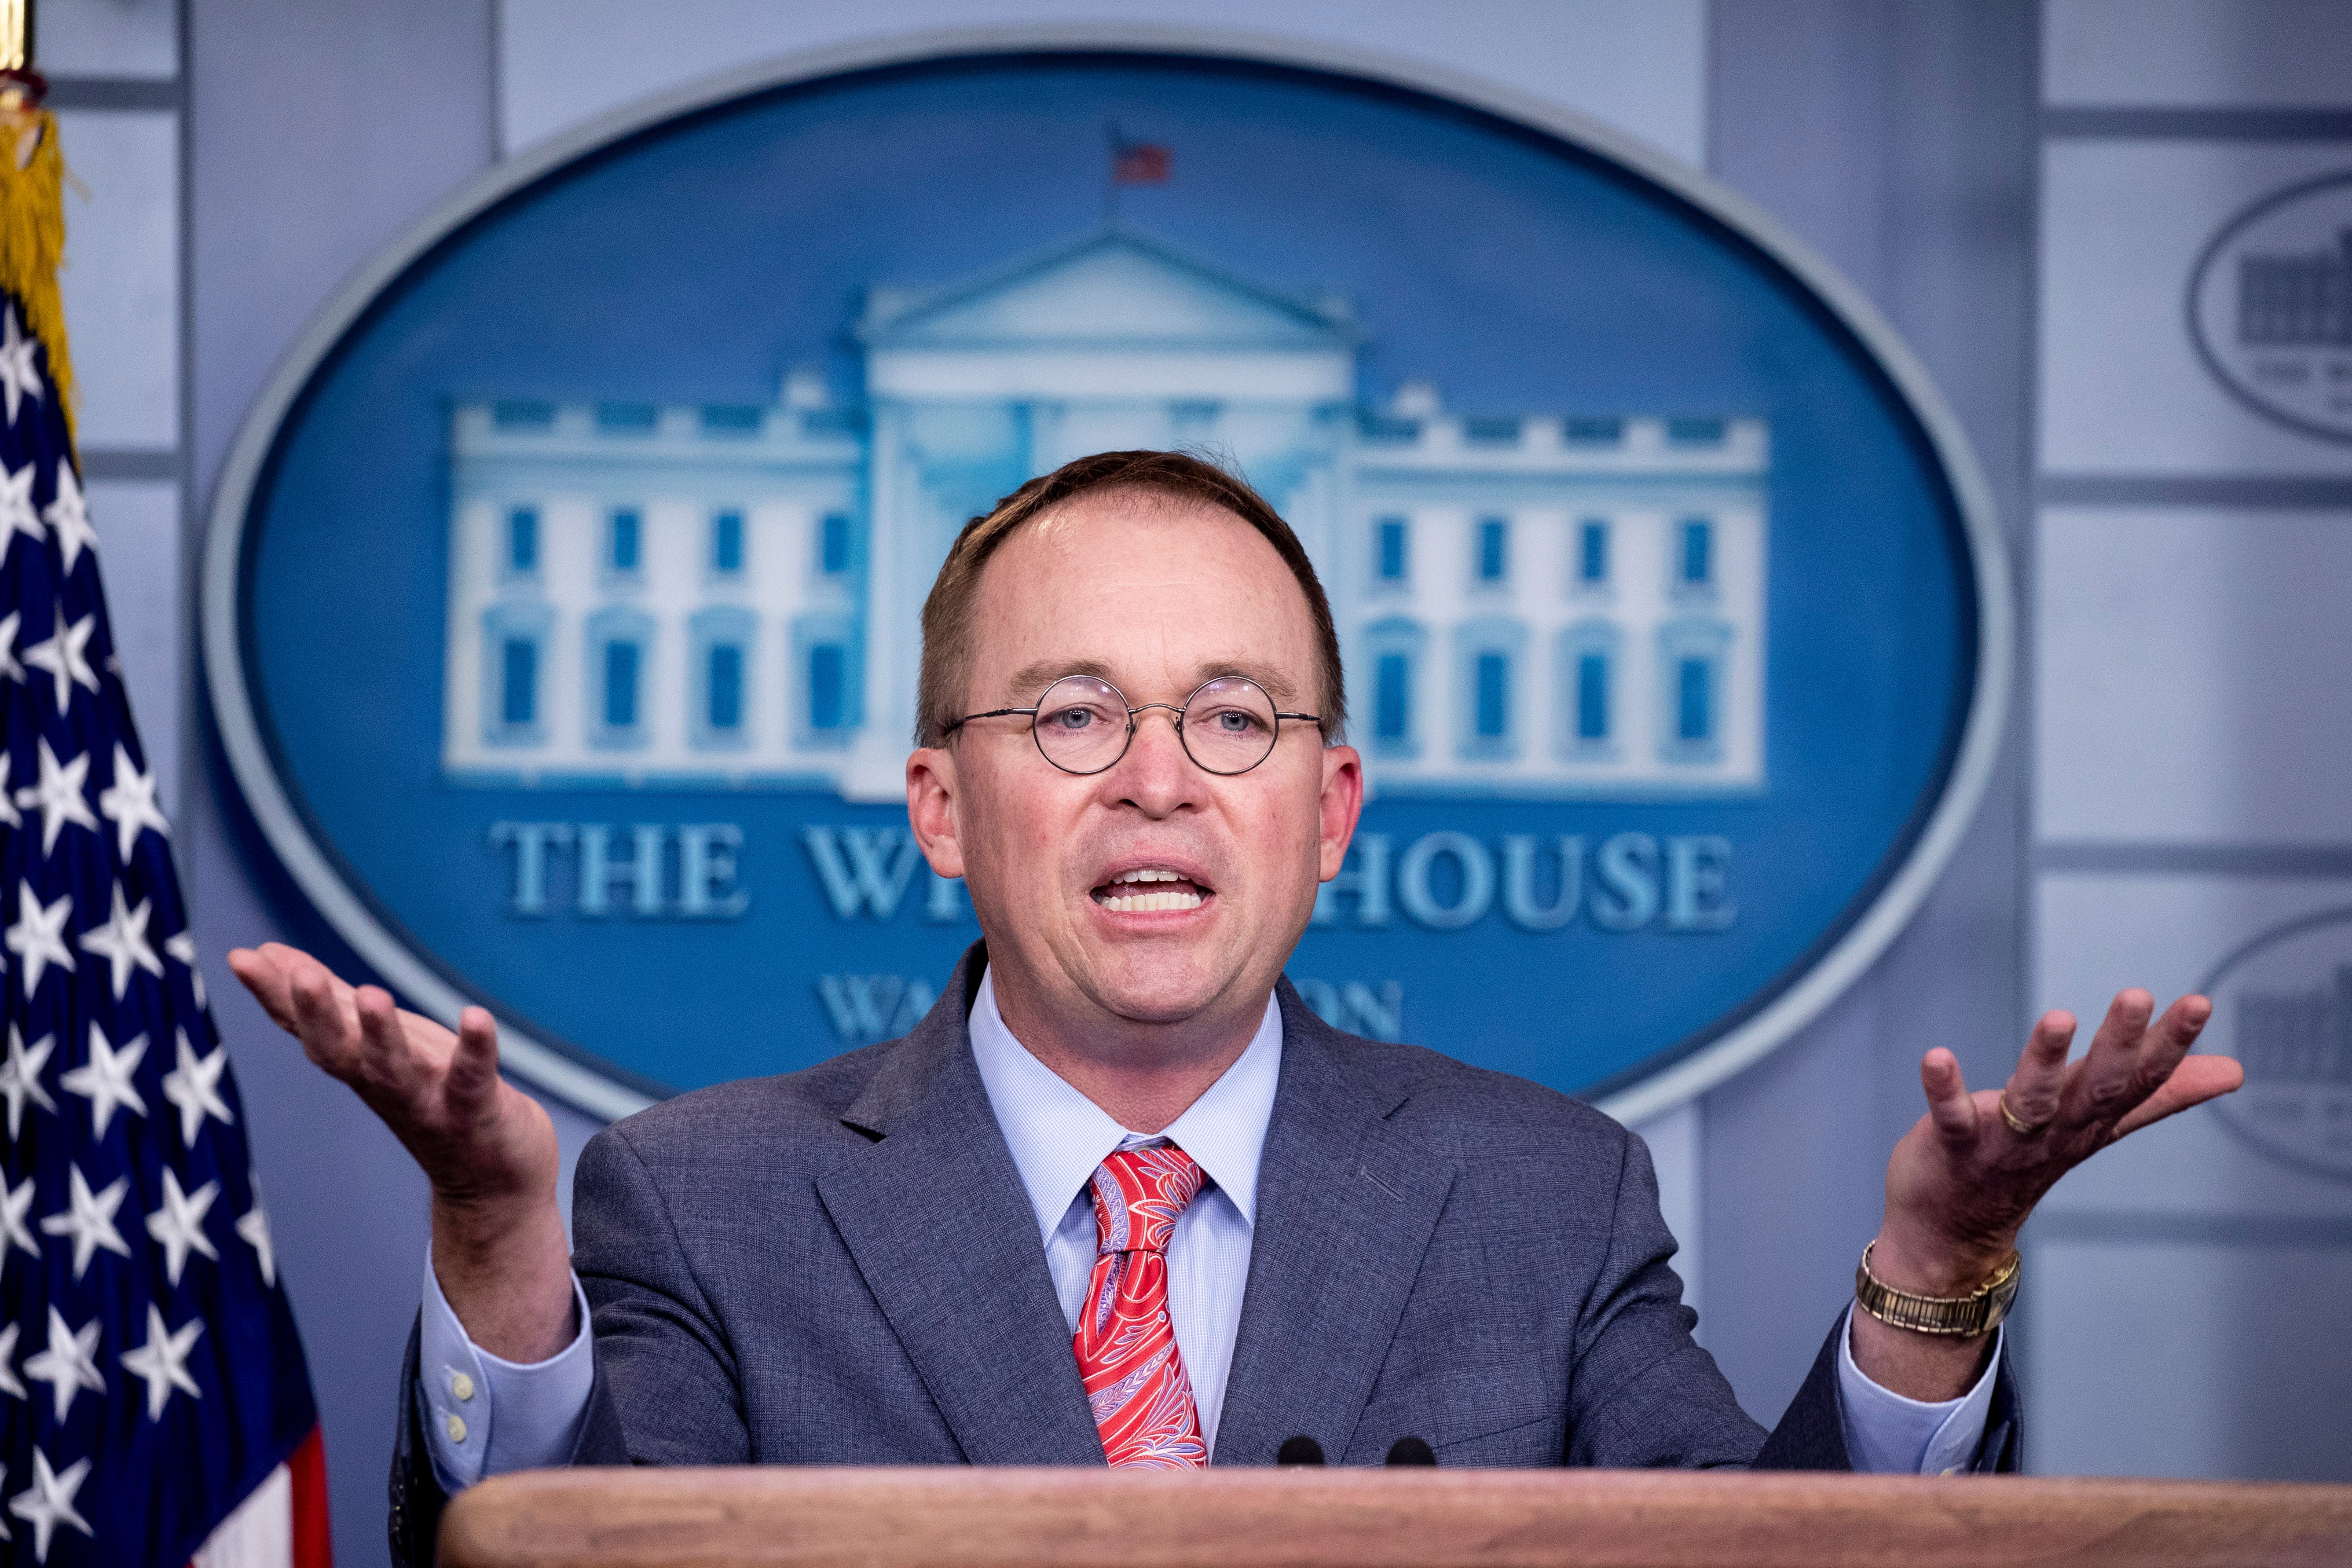 usatoday.com - William Cummings, USA TODAY - 'He still considers himself to be in the hospitality business': Mulvaney explains Trump's Doral decision